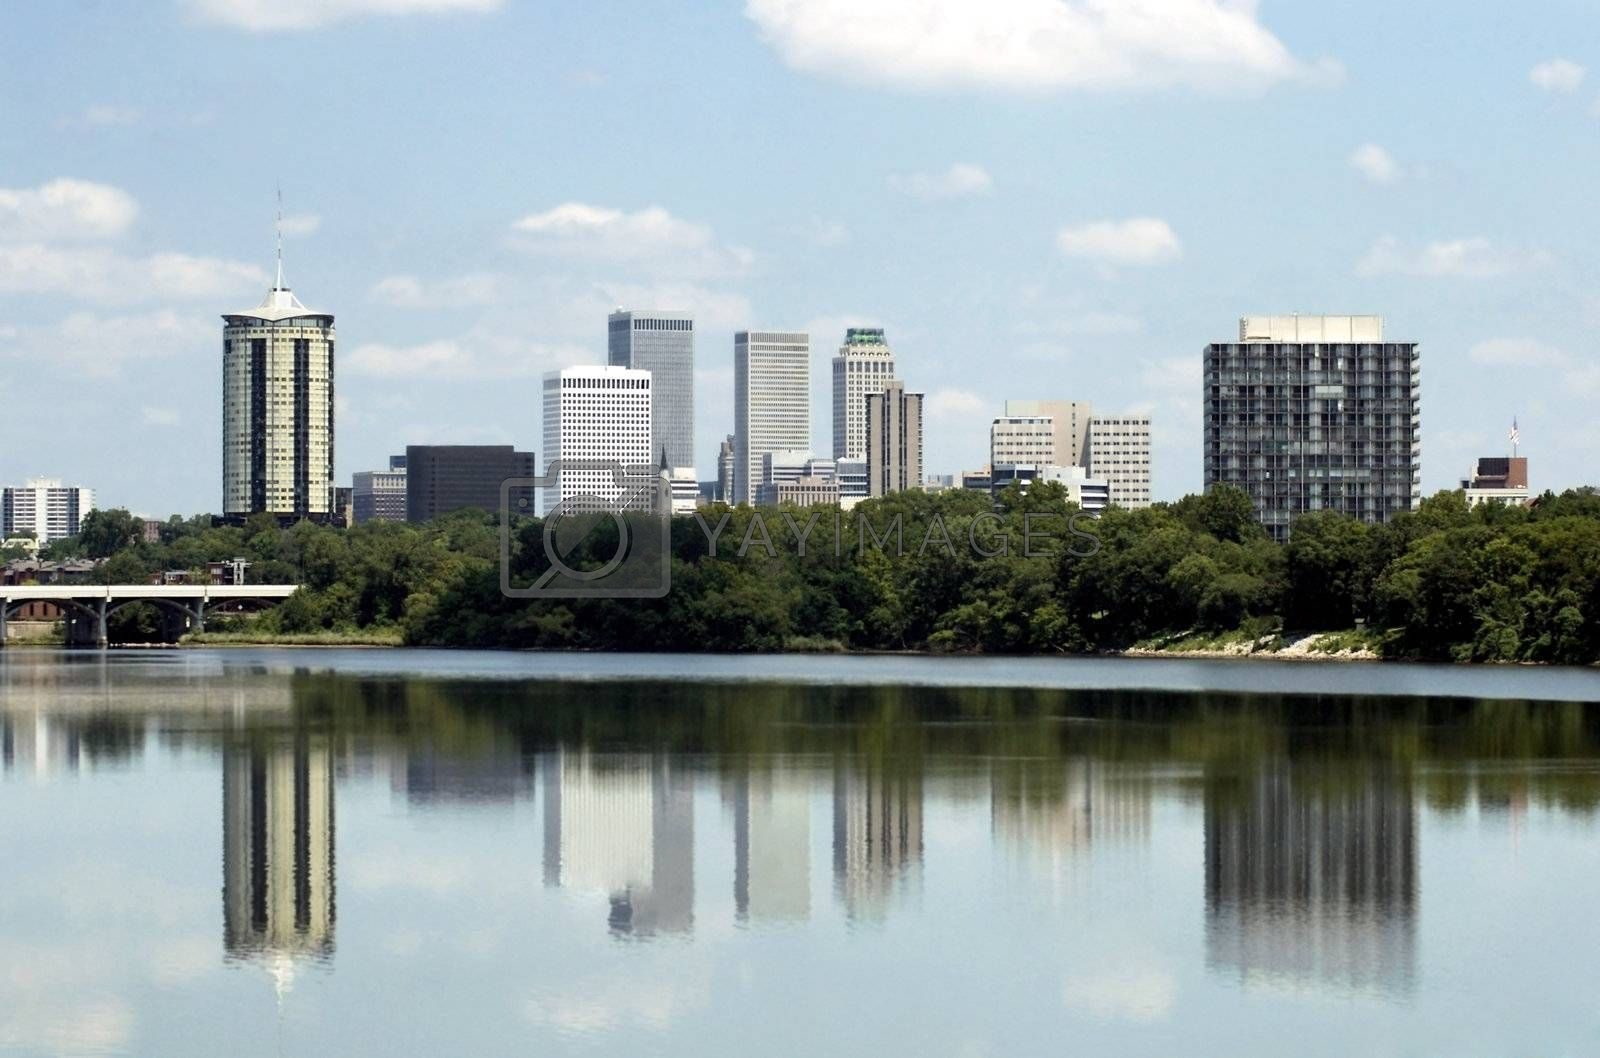 Skyline view of the city of Tulsa, Oklahoma with buildings reflected in the Arkansas River.